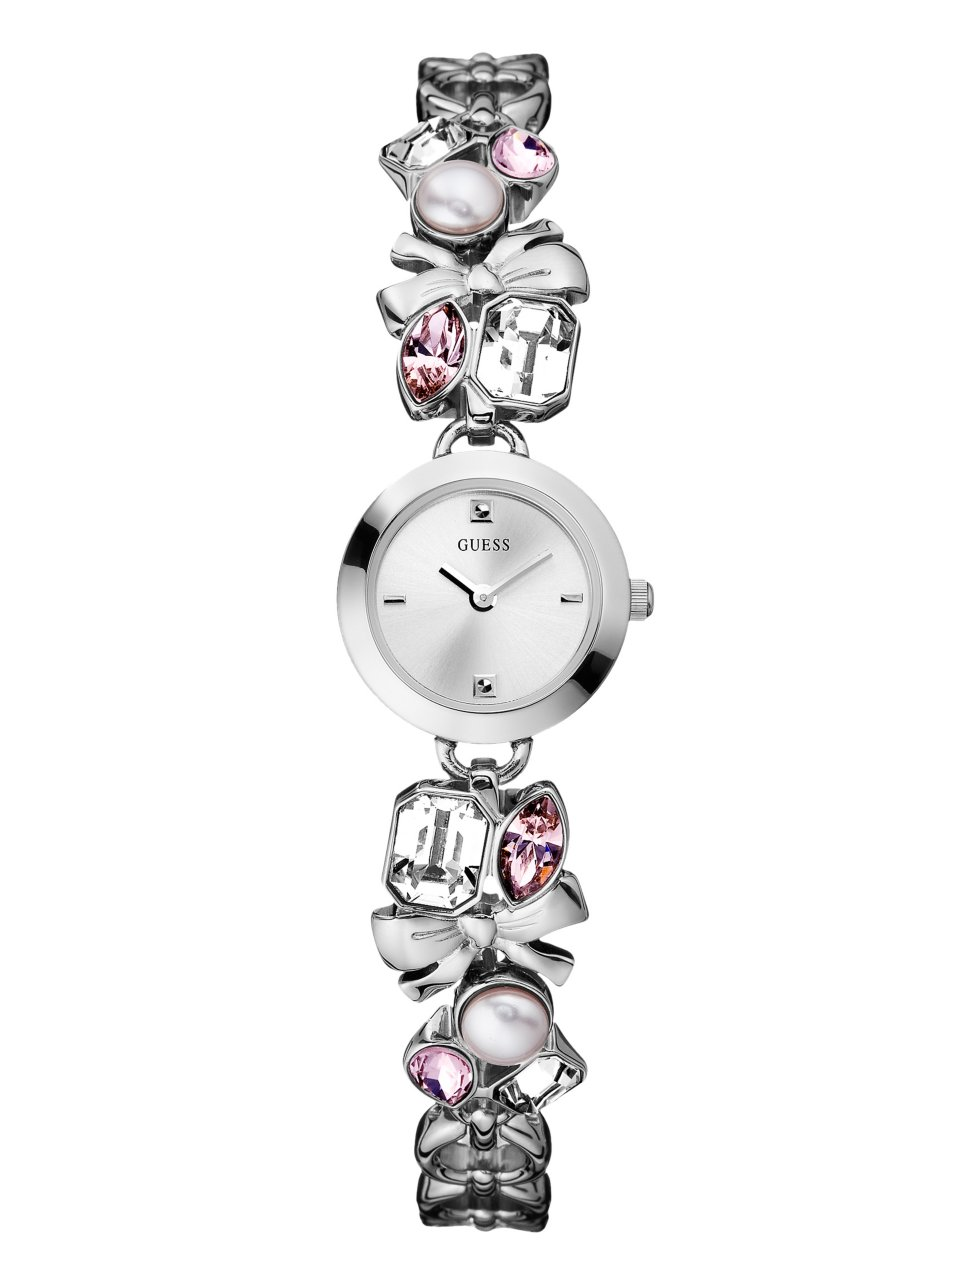 GUESS Crystallized Romance Watch - Silver